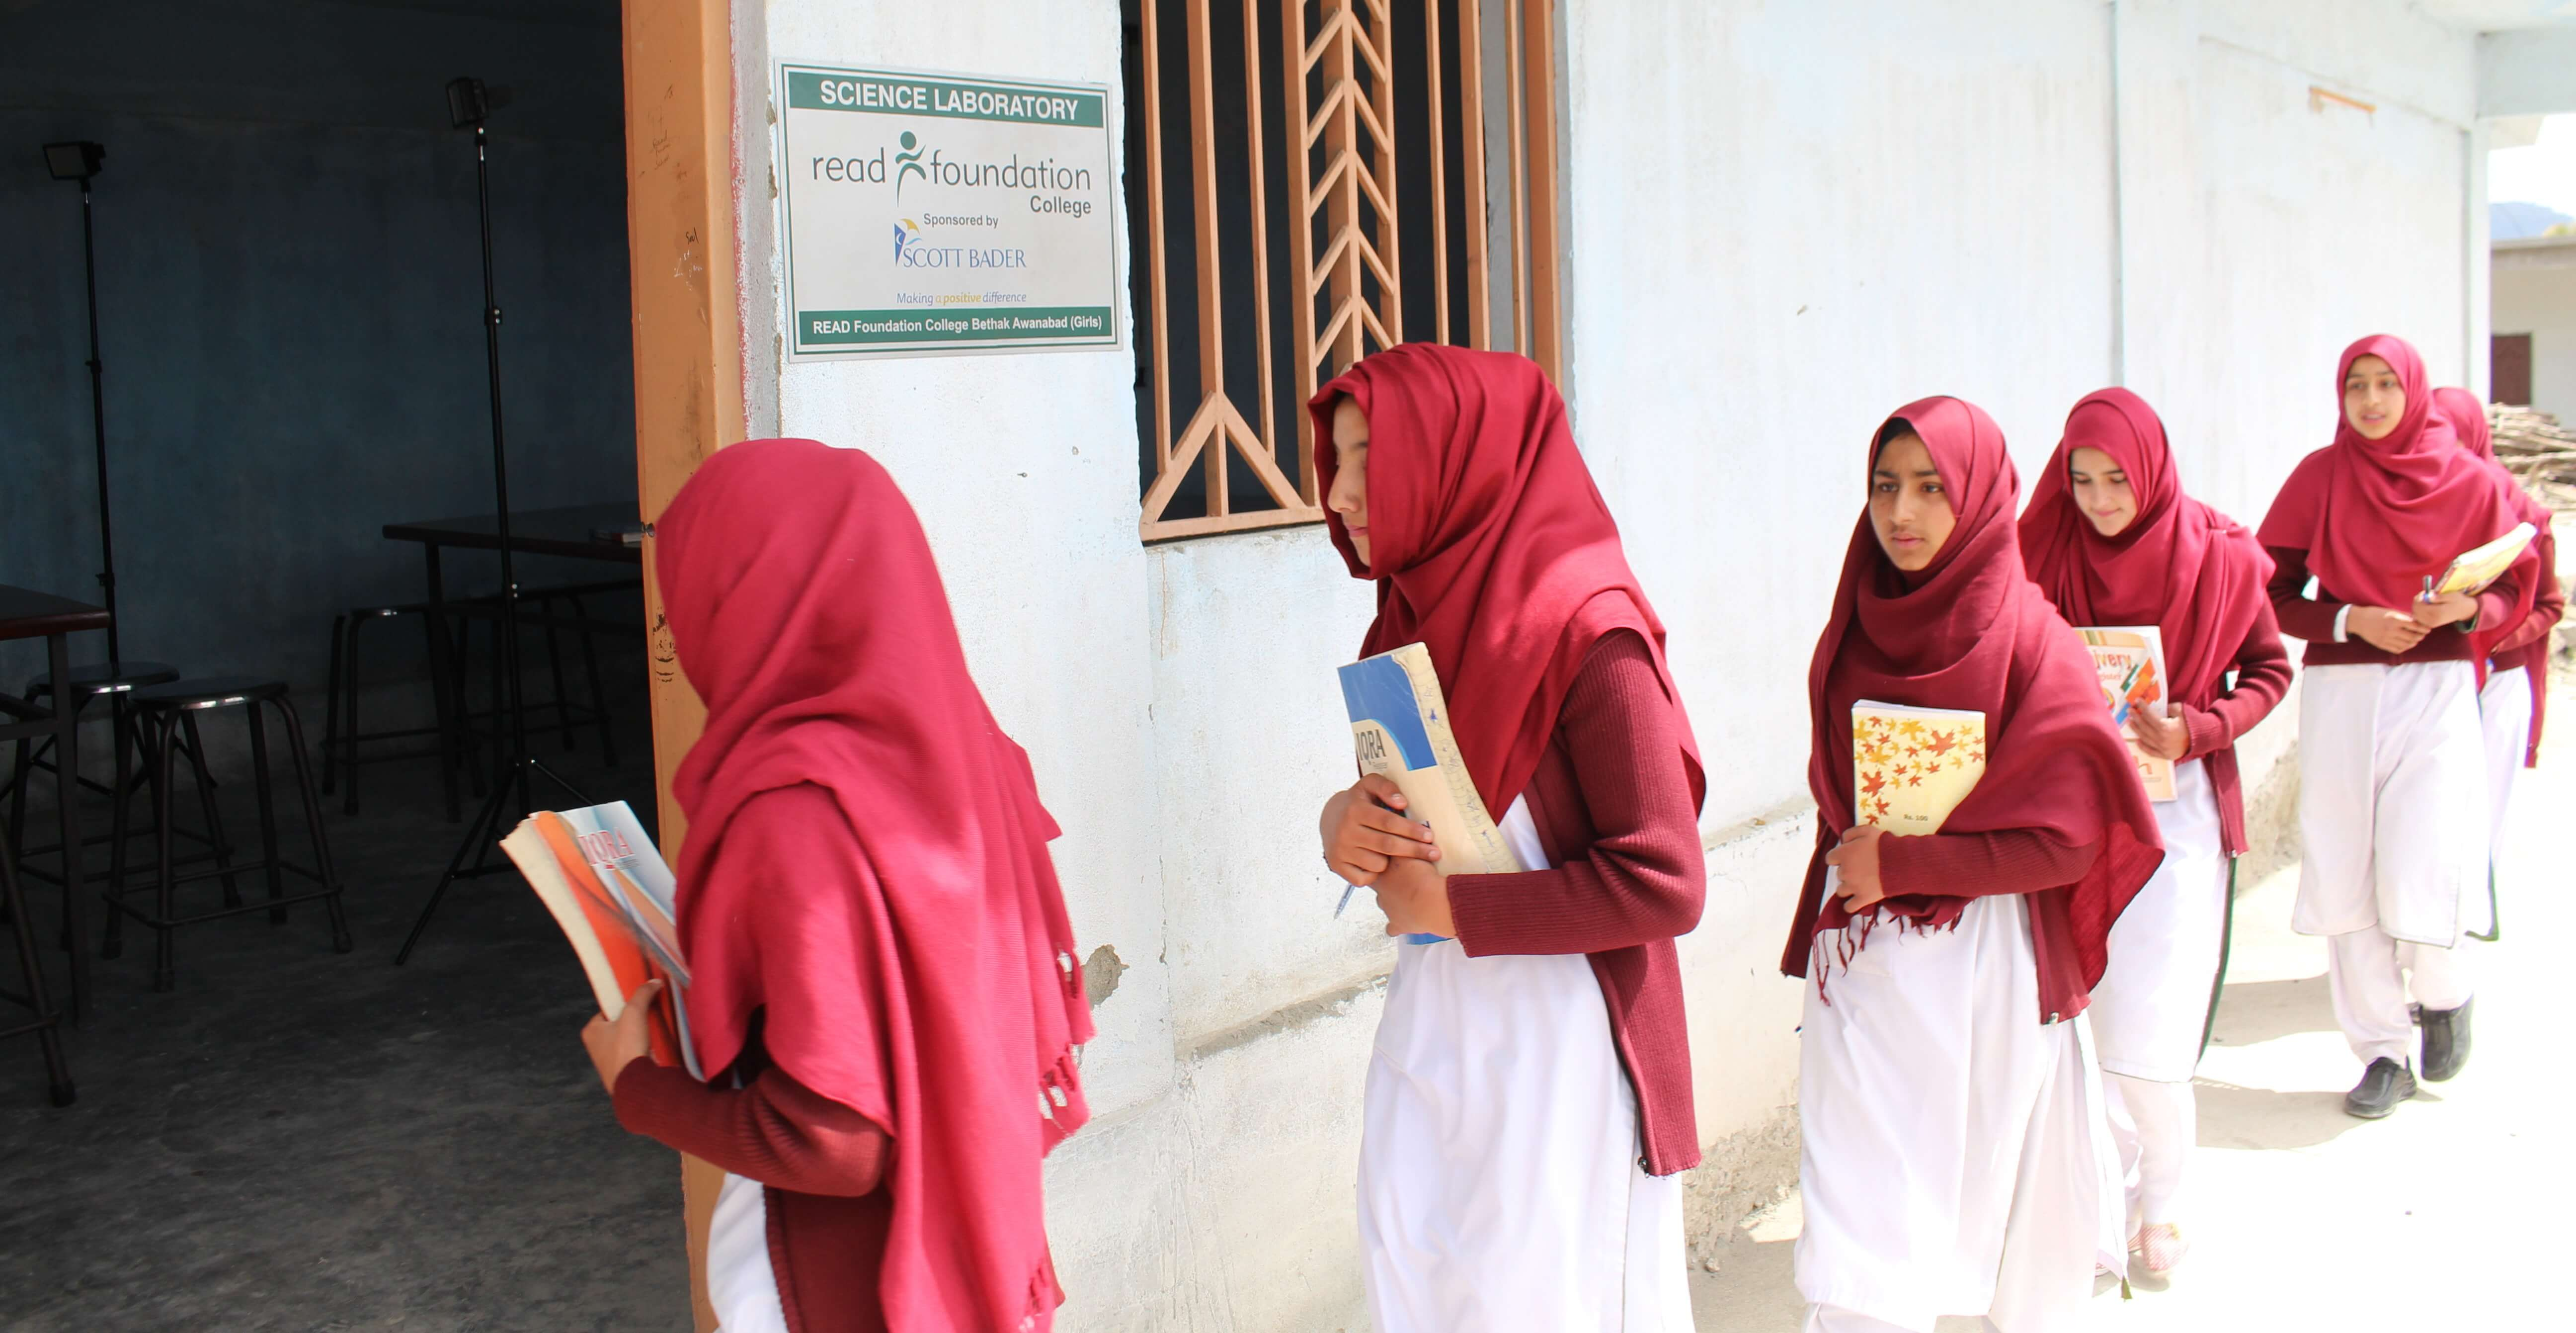 Scott Bader Commonwealth sponsors female student science laboratory in rural Pakistan